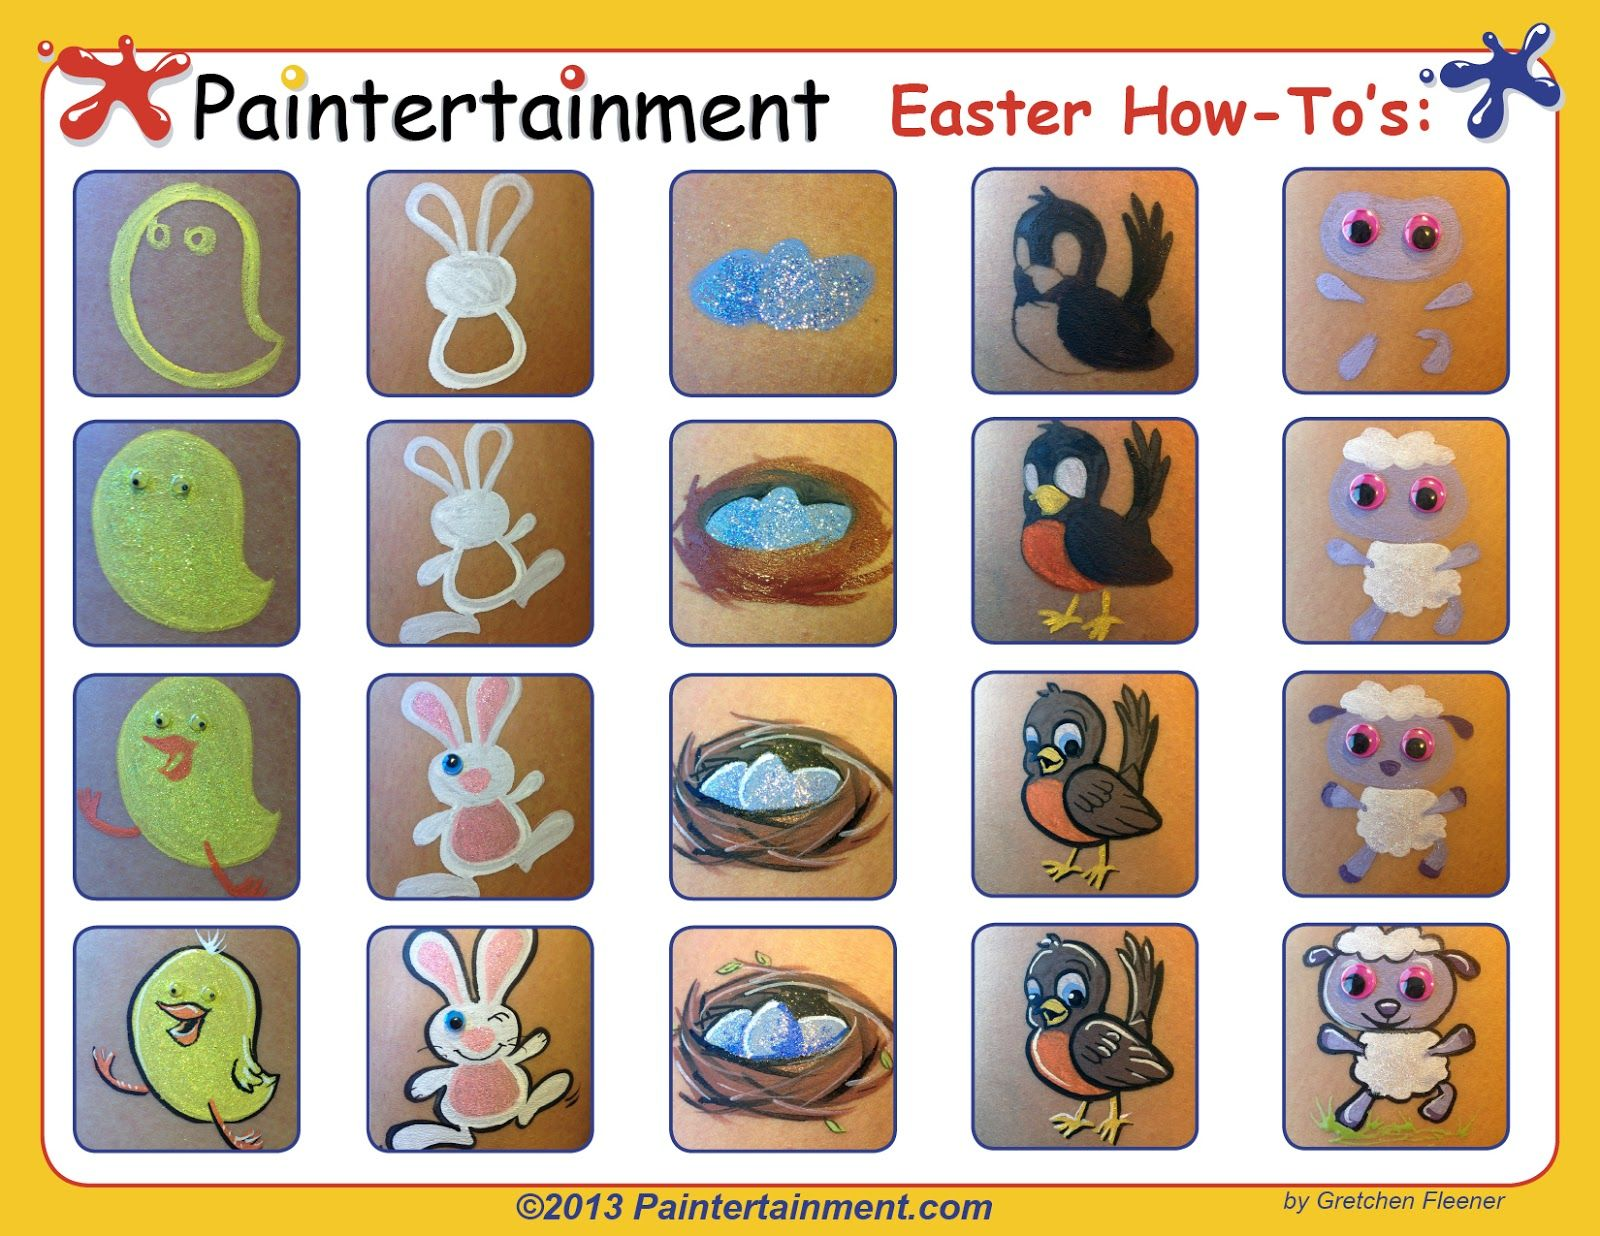 Uncategorized Simple Face Painting Templates paintertainment easter cheek art 11 free how tos face paint i had so much fun coming up with designs for my march e newsletter just to share all of these wi